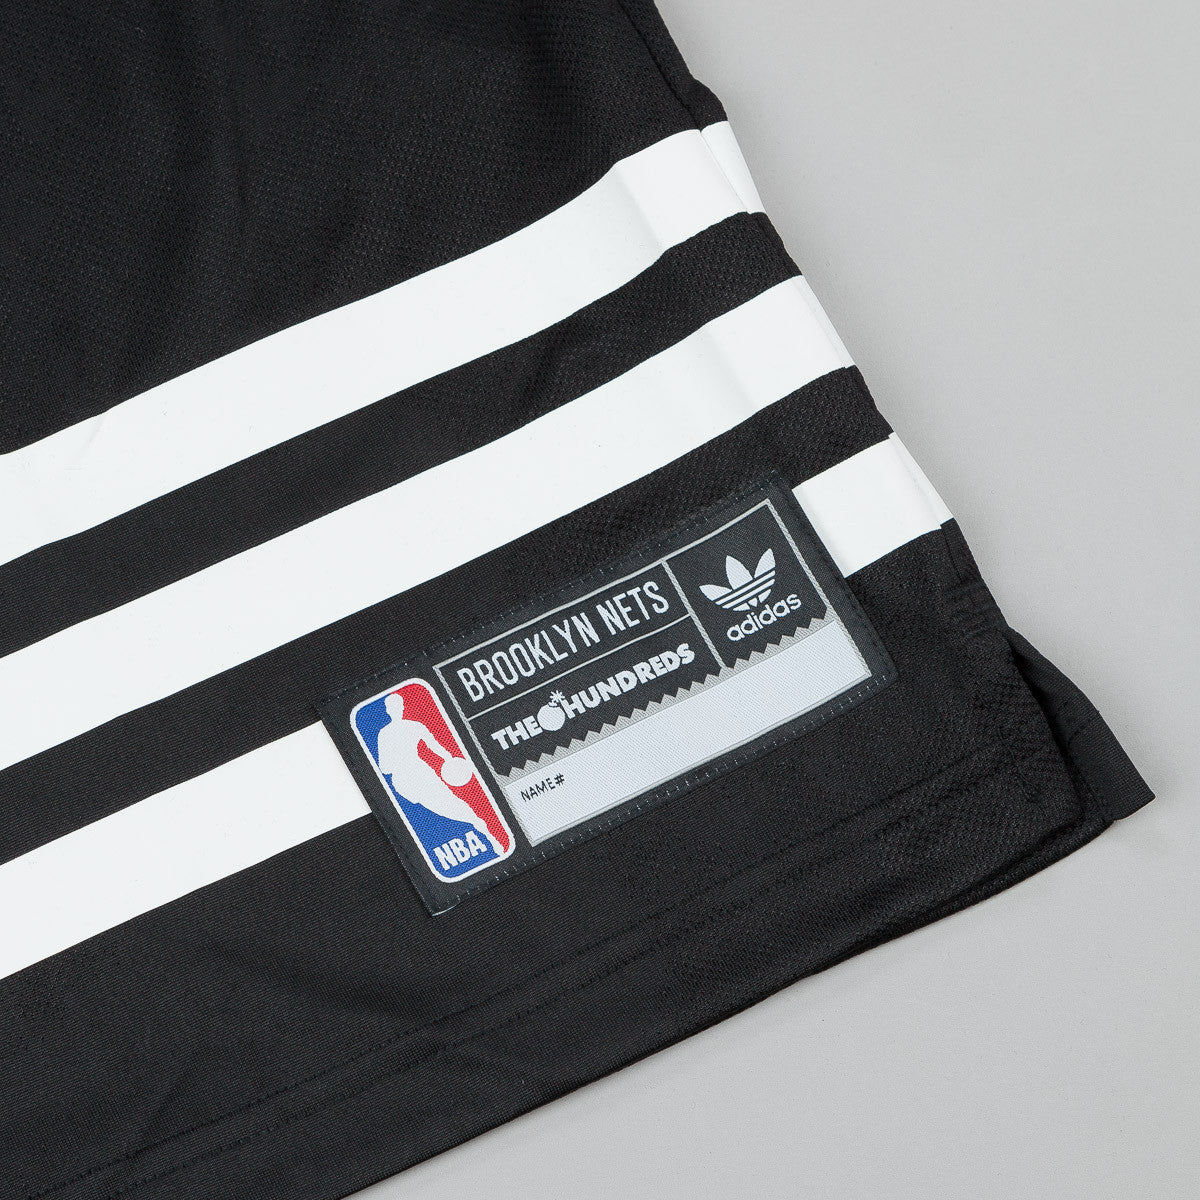 Adidas x NBA x The Hundreds NY Jersey - Black